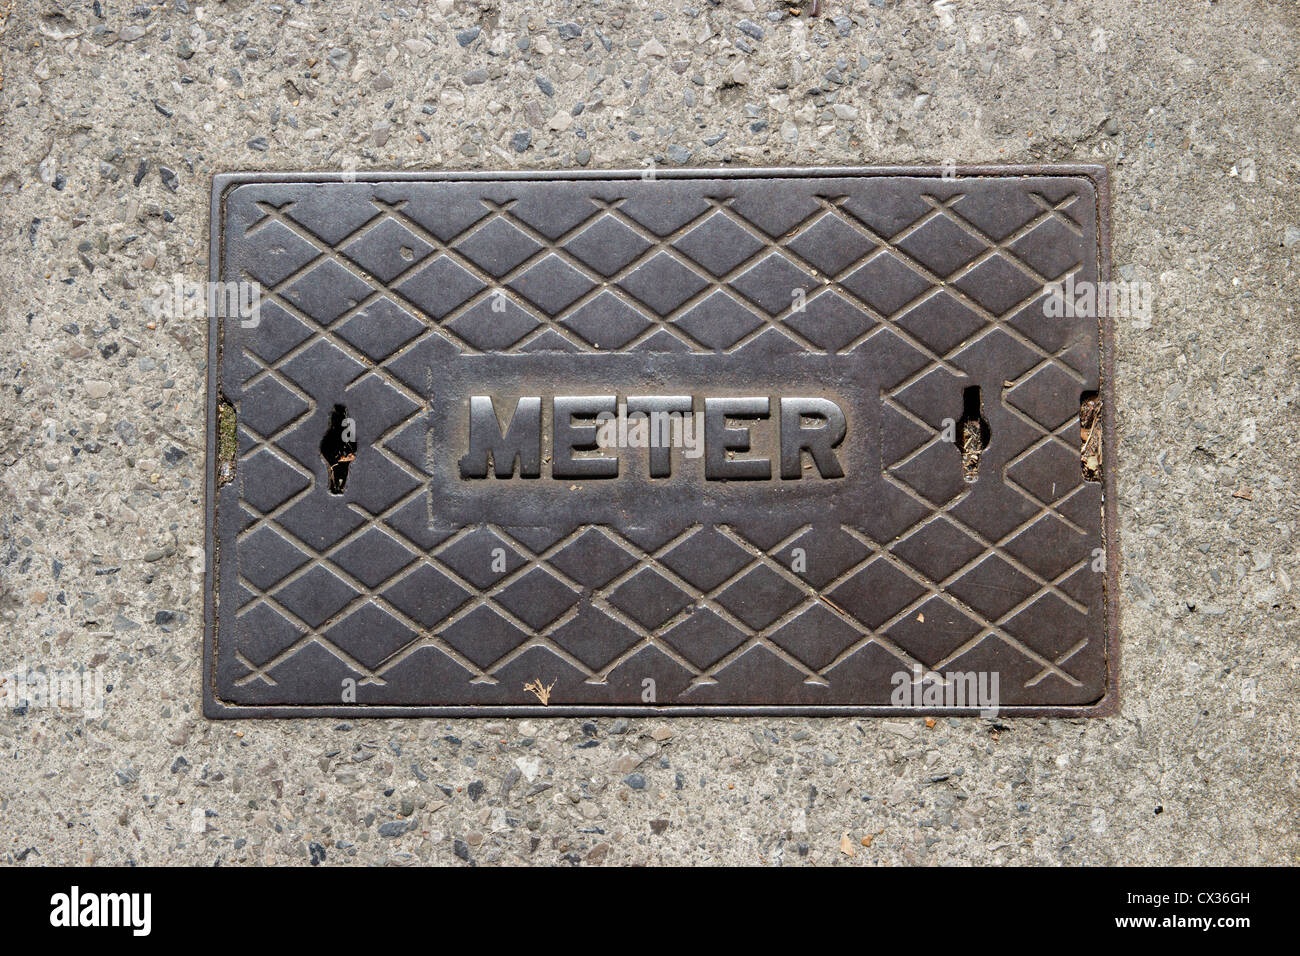 Water Meter Cover Inspection Plate - Stock Image